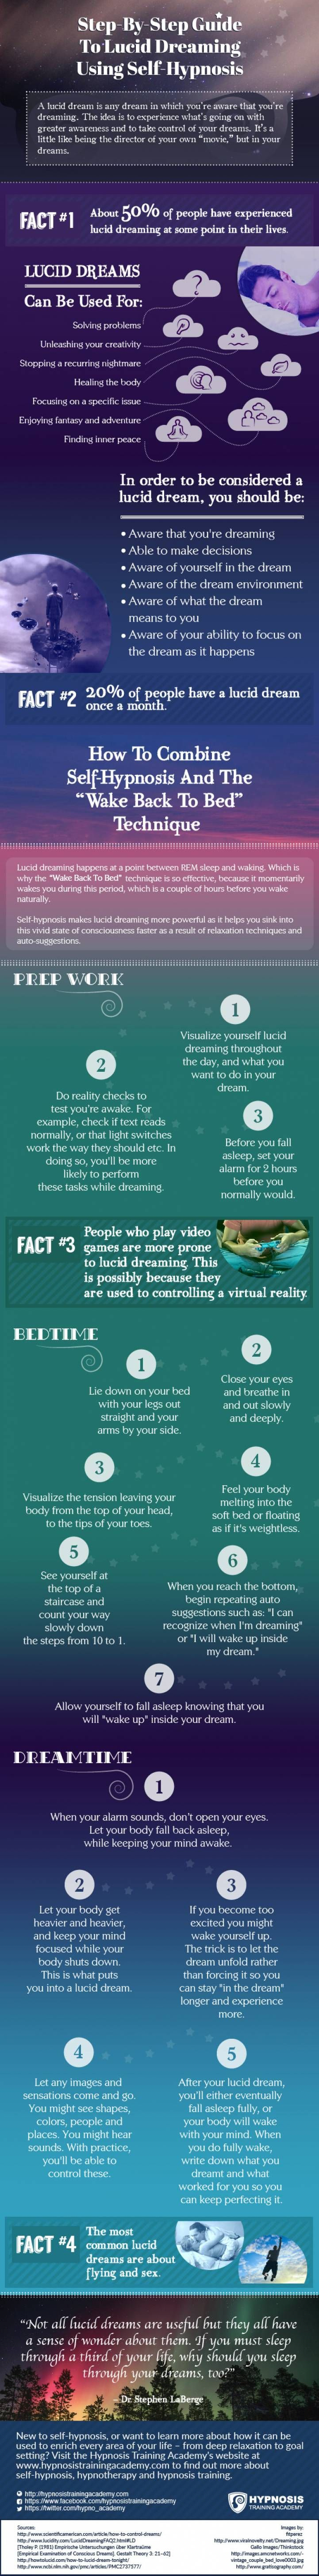 Best 25 lucid dream hypnosis ideas on pinterest neurology infographic the step by step guide to lucid dreaming using self hypnosis ccuart Images